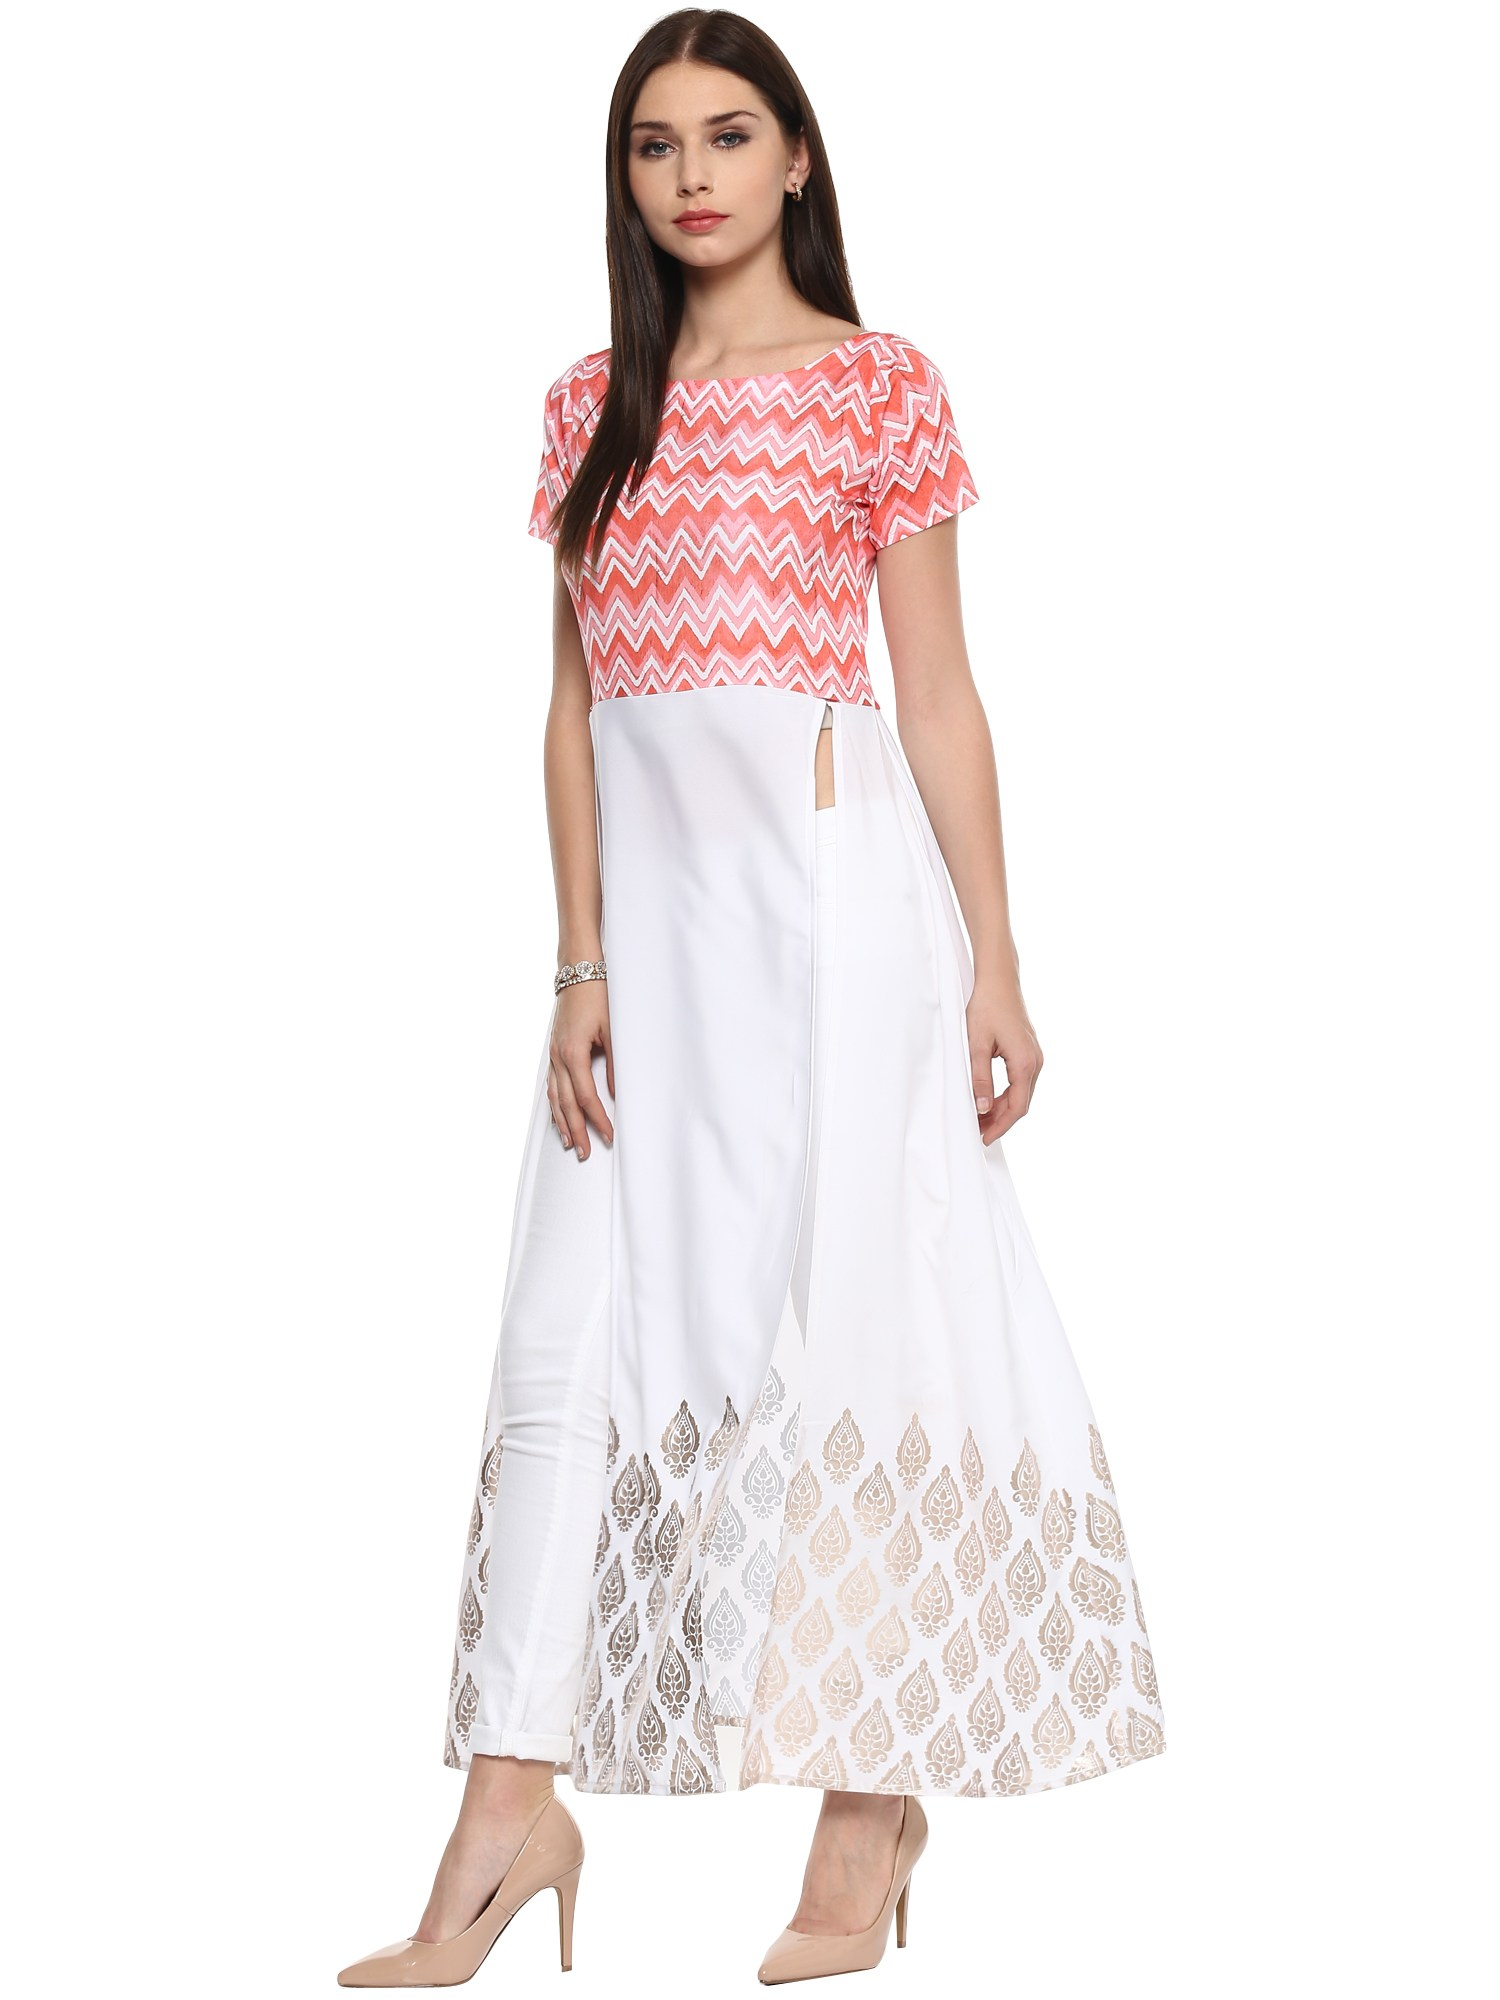 Image for 7800+ Designer Kurtis Online With Up to 80% OFF